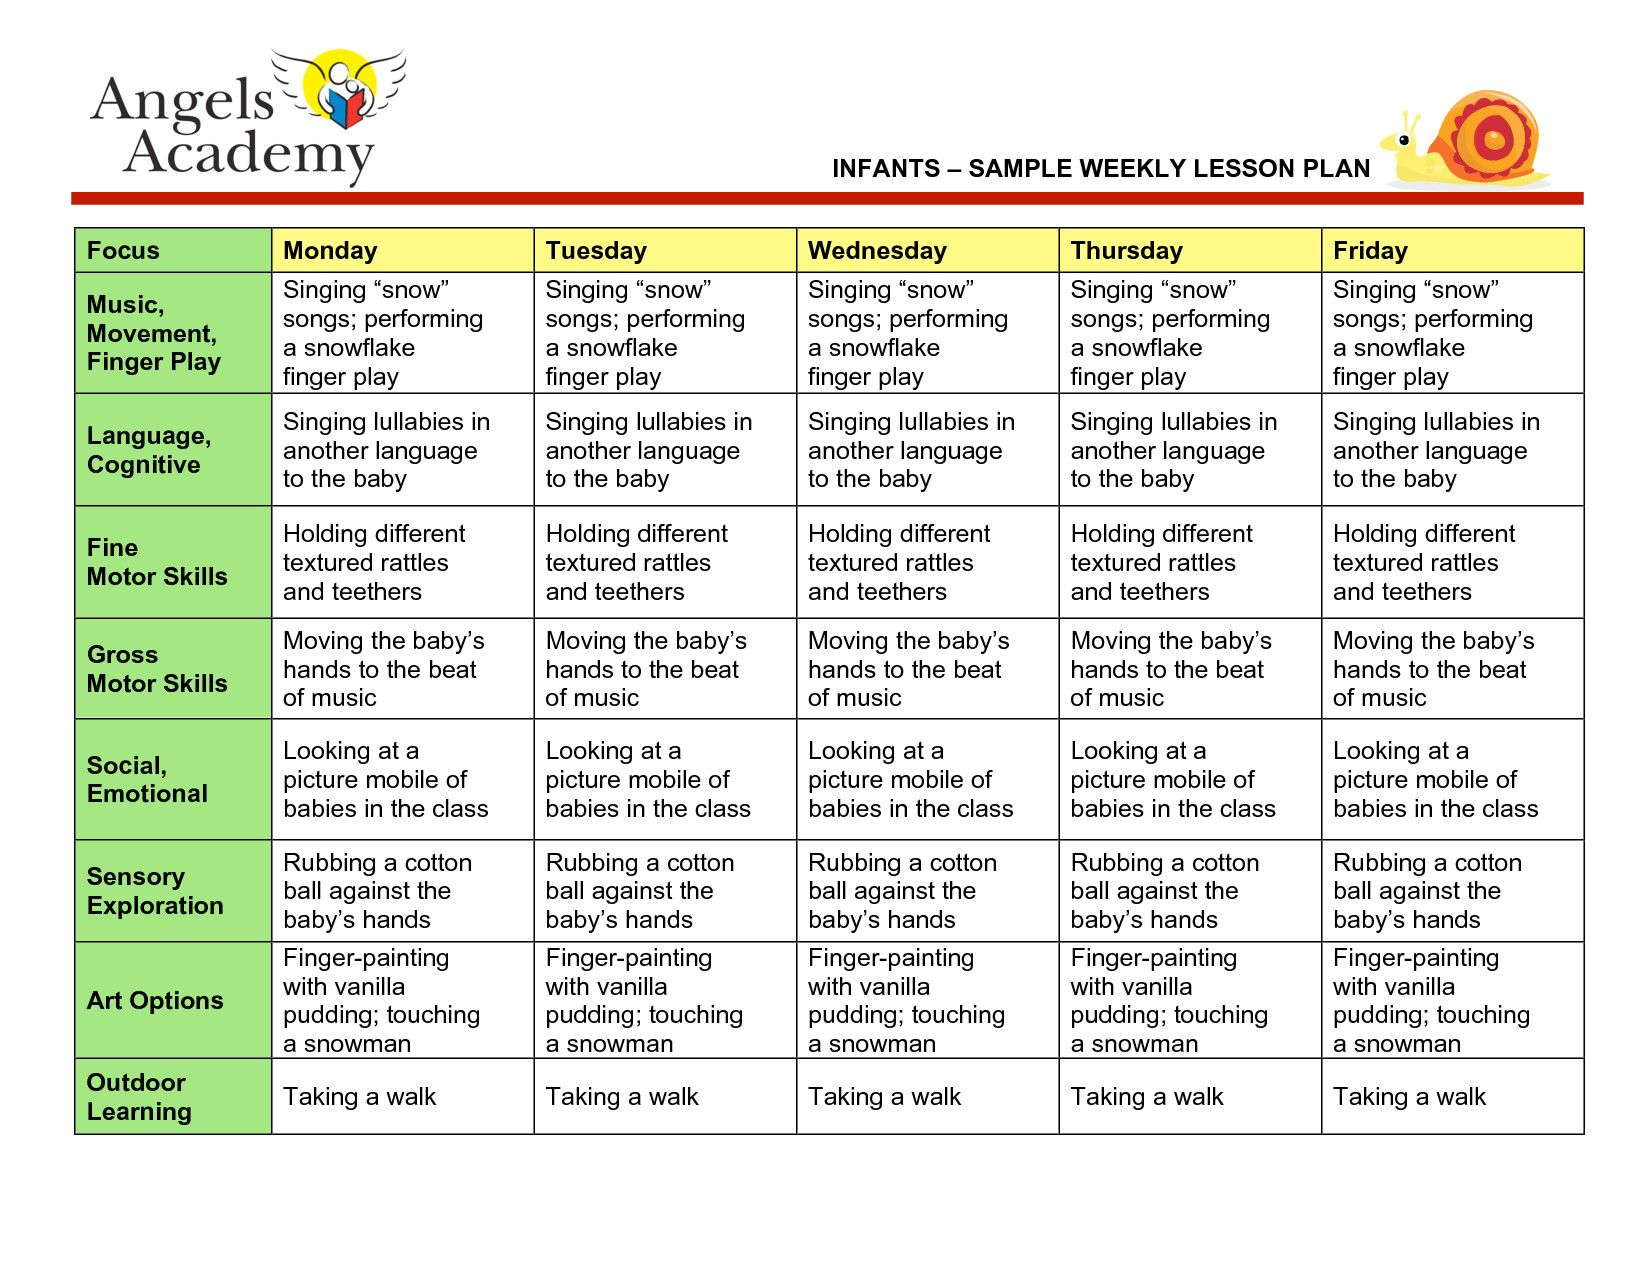 Week Long Lesson Plan Template New Blank Lesson Plan Template Infant Lesson Plans Lesson Plans For Toddlers Curriculum Lesson Plans